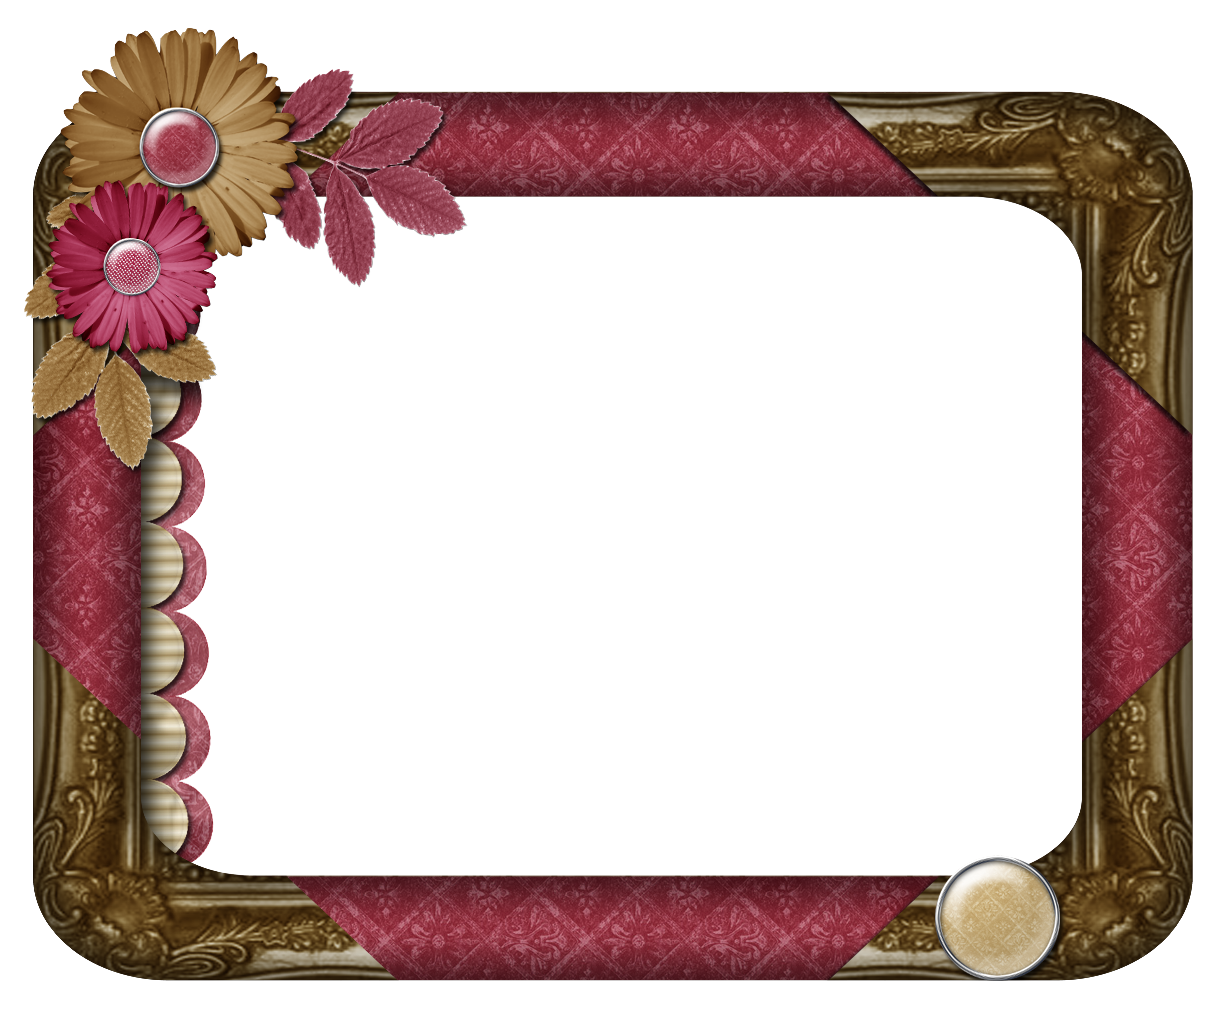 Scrapbooking freebies frames - Honey bunches of oats coupons 2018